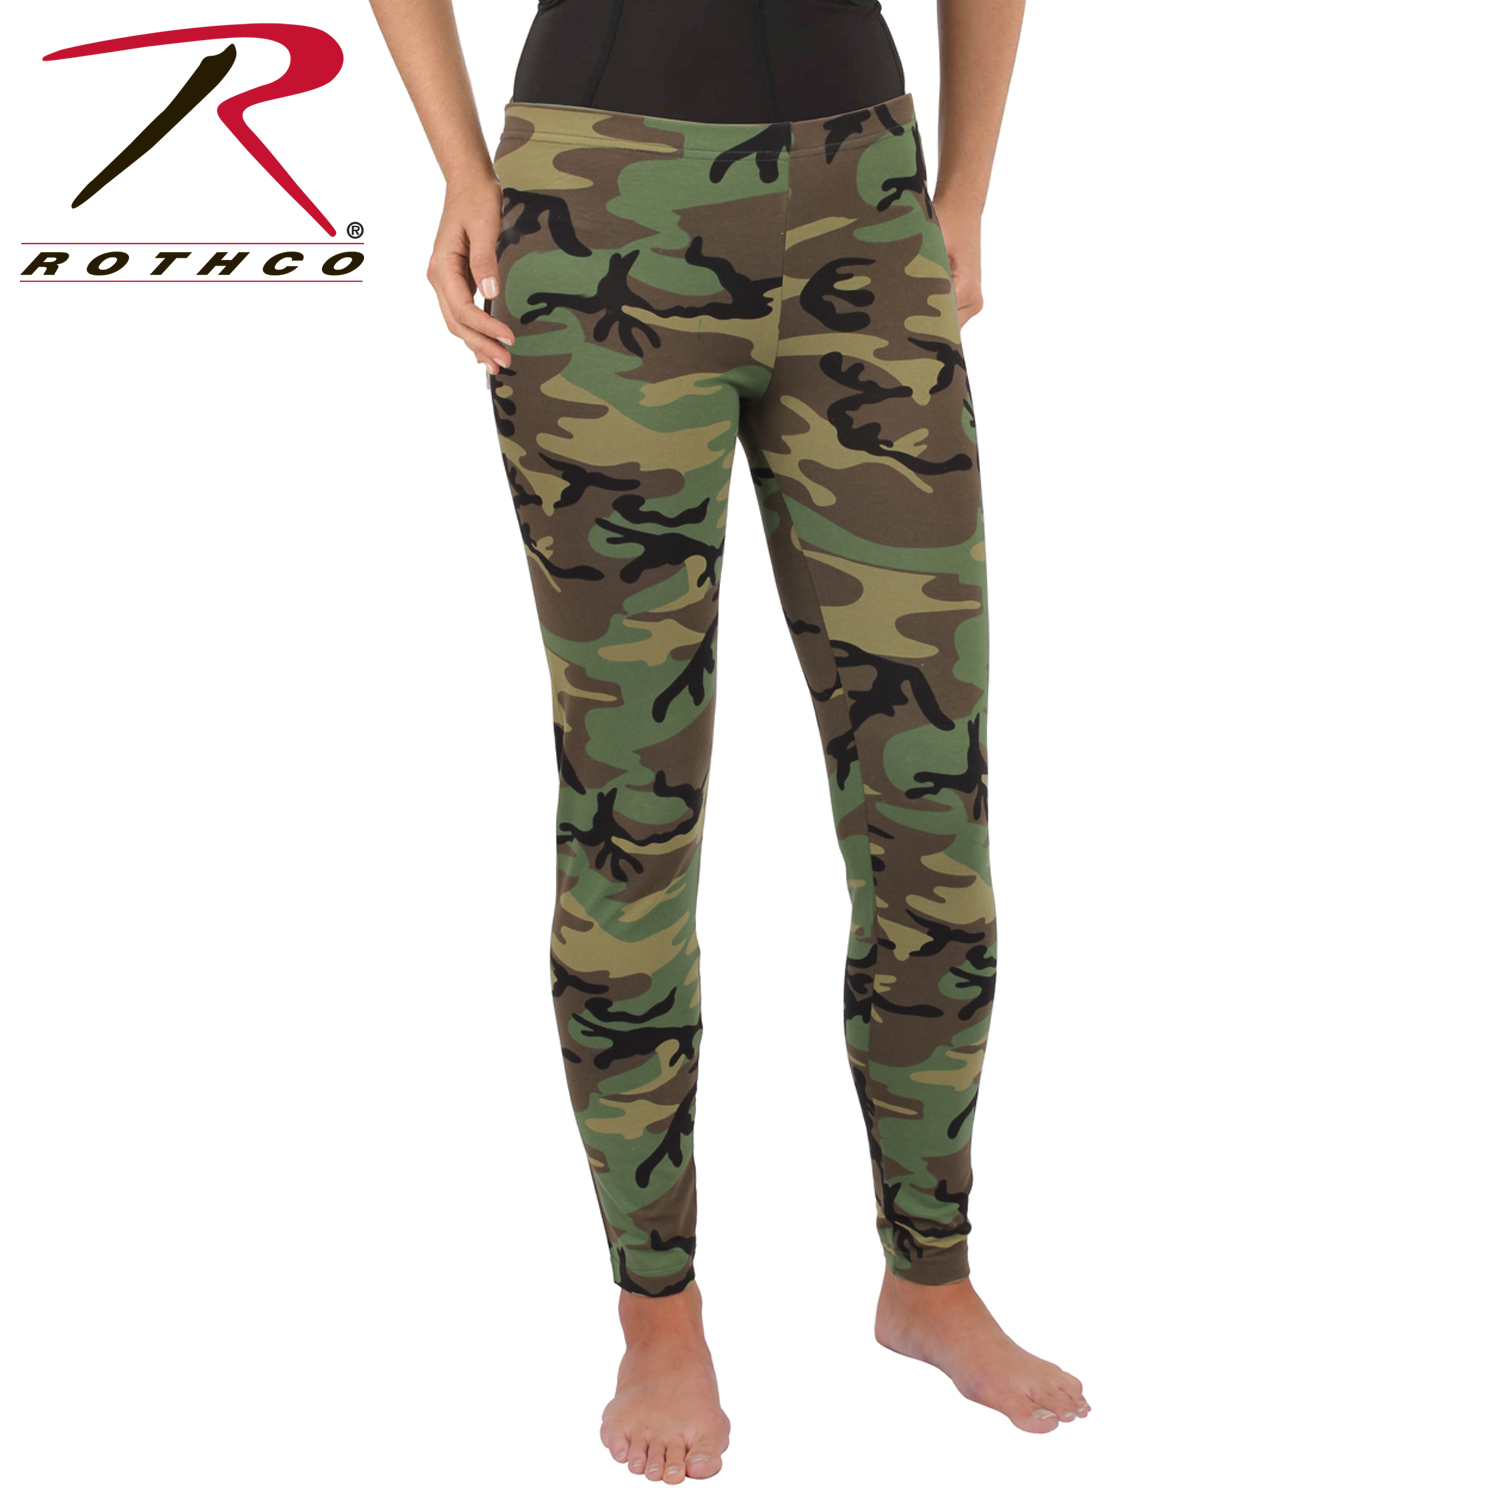 Realtree Camo Yoga Shorts Color Options By Girlswithguns22: Rothco Womens Camo Leggings